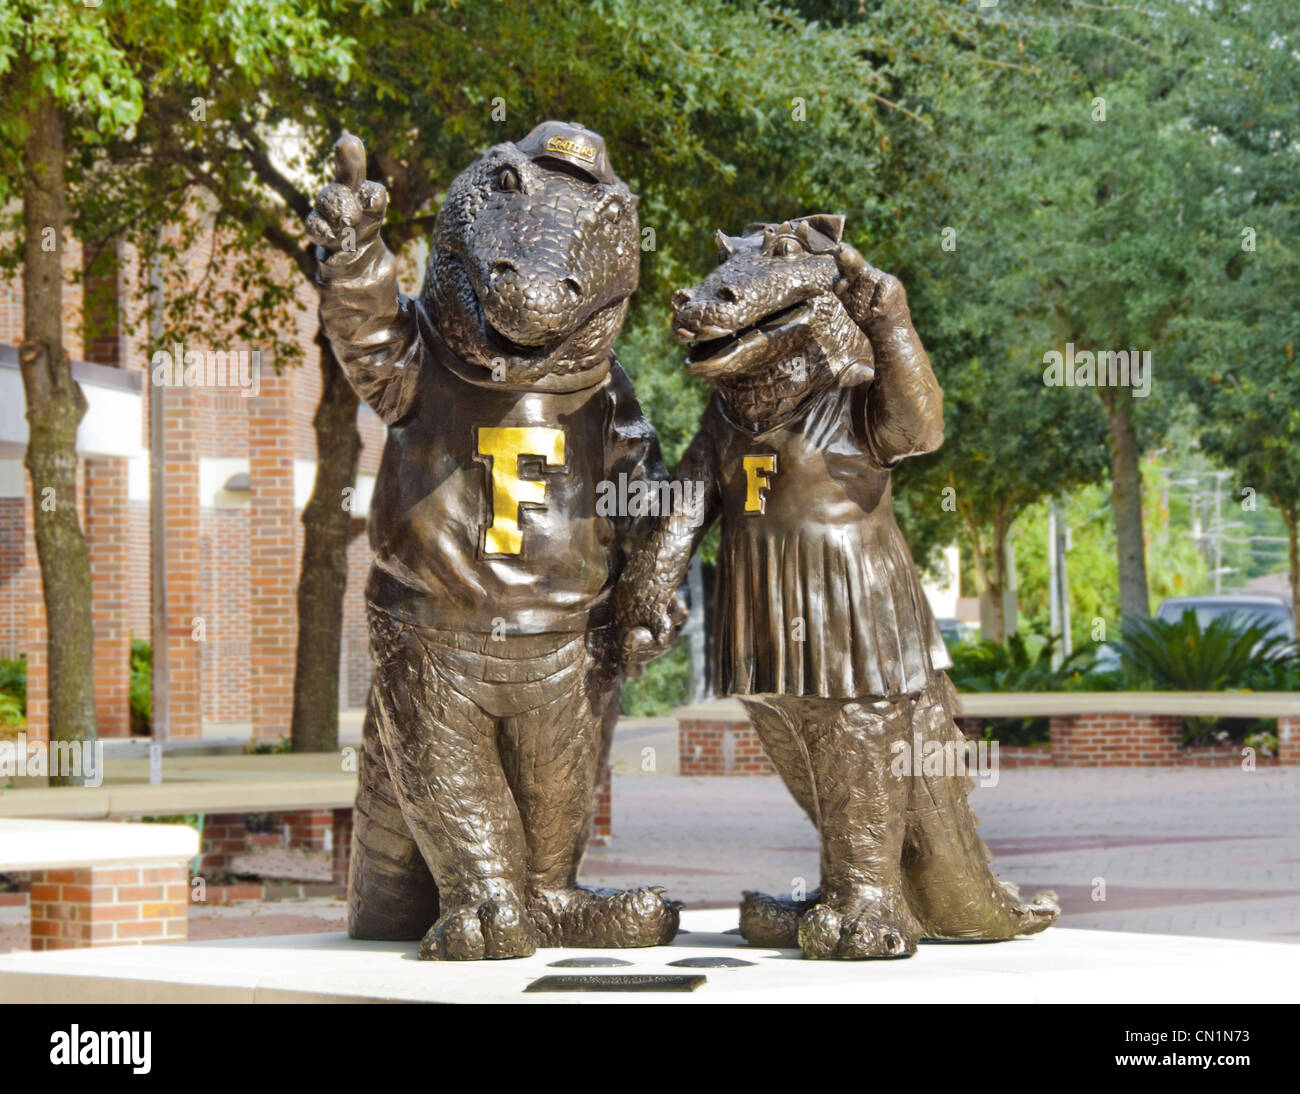 Statues of University of Florida mascots Albert E. Gator and Alberta Gator stand across the campus in Gainesville, - Stock Image